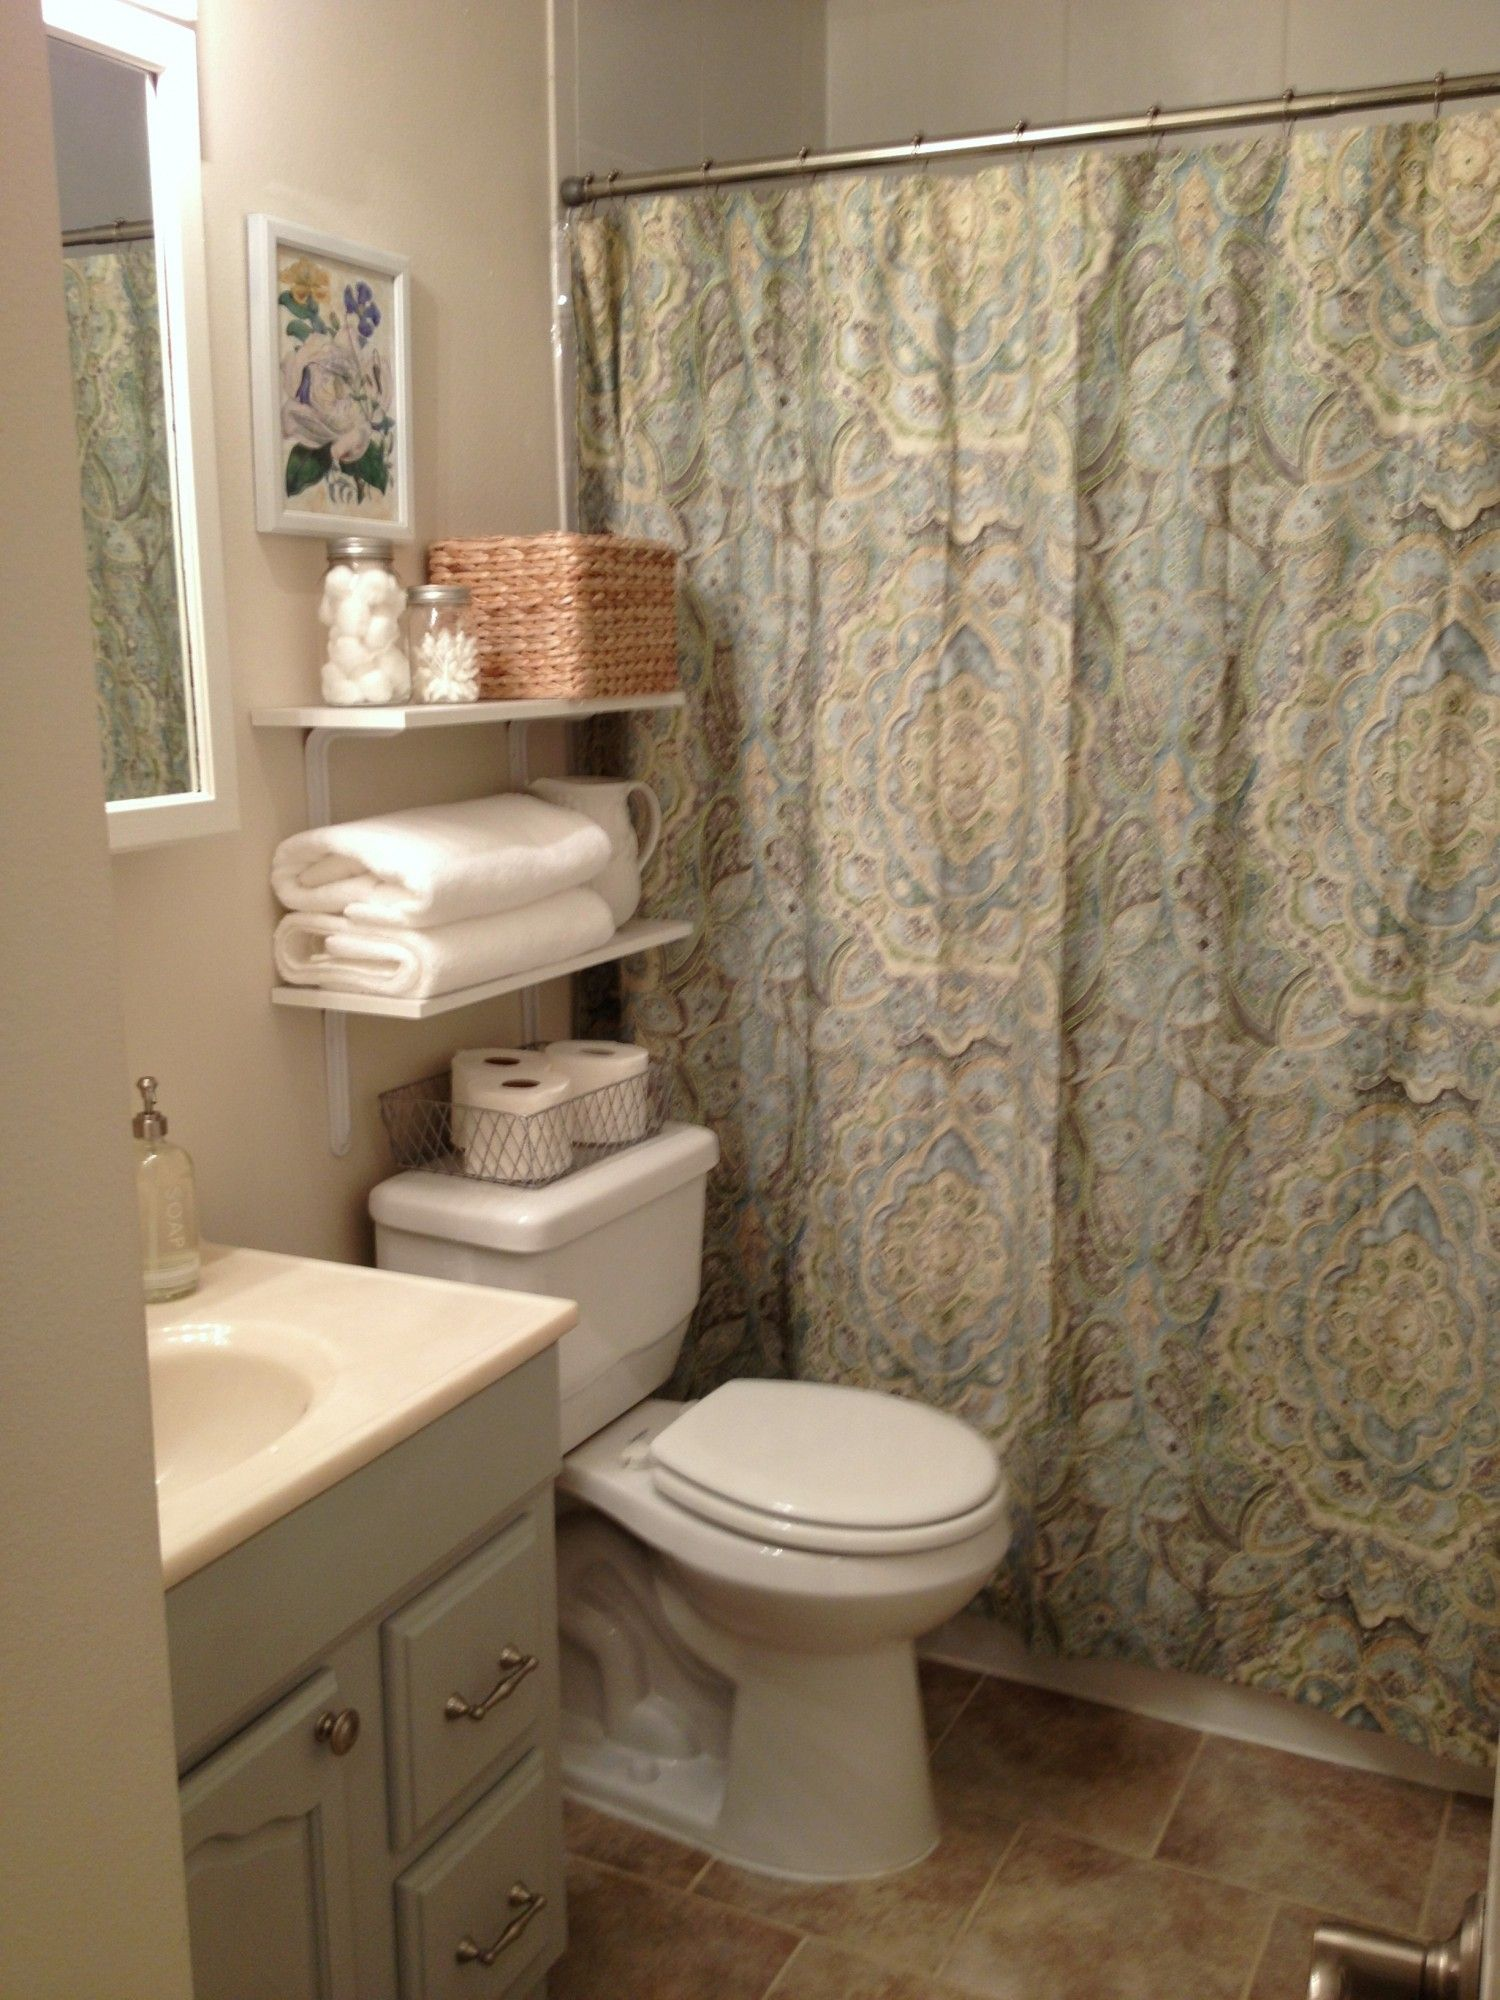 Guest Bathroom Ideas Here Is A Little Side By Side Just Because - Bathroom accessories for small bathroom ideas